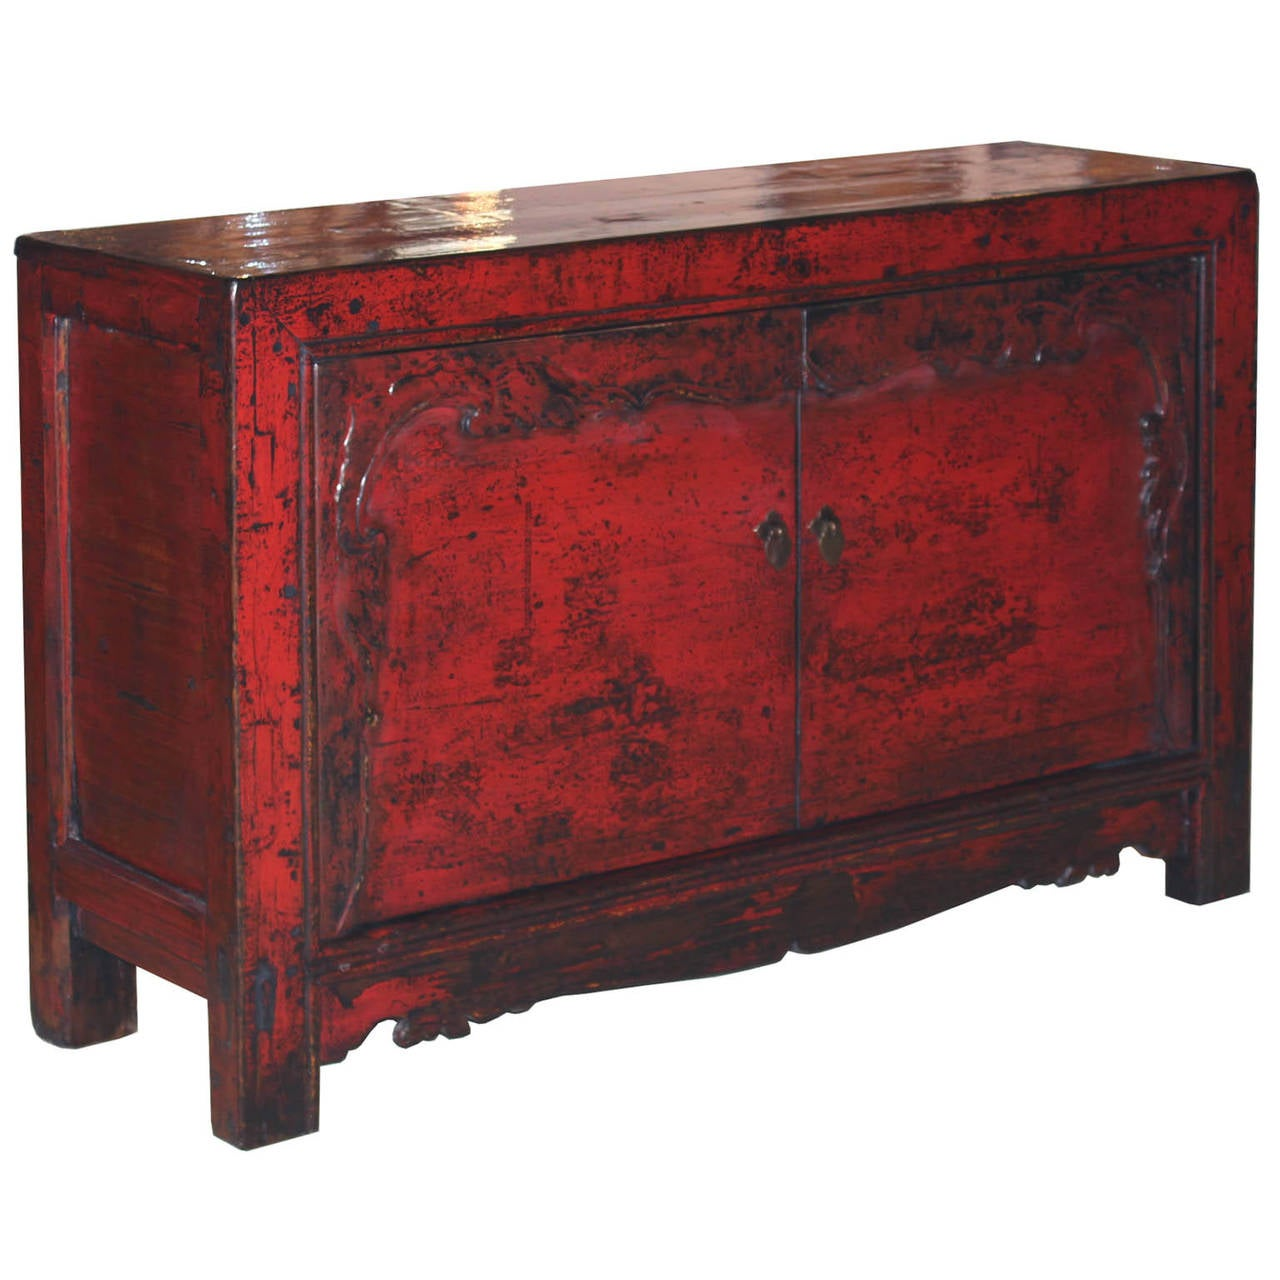 Two-door buffet with red lacquer. Hand-carved doors with green borders and carved bottom skirt. New interior shelf and hardware. Gansu, China, circa 1890.